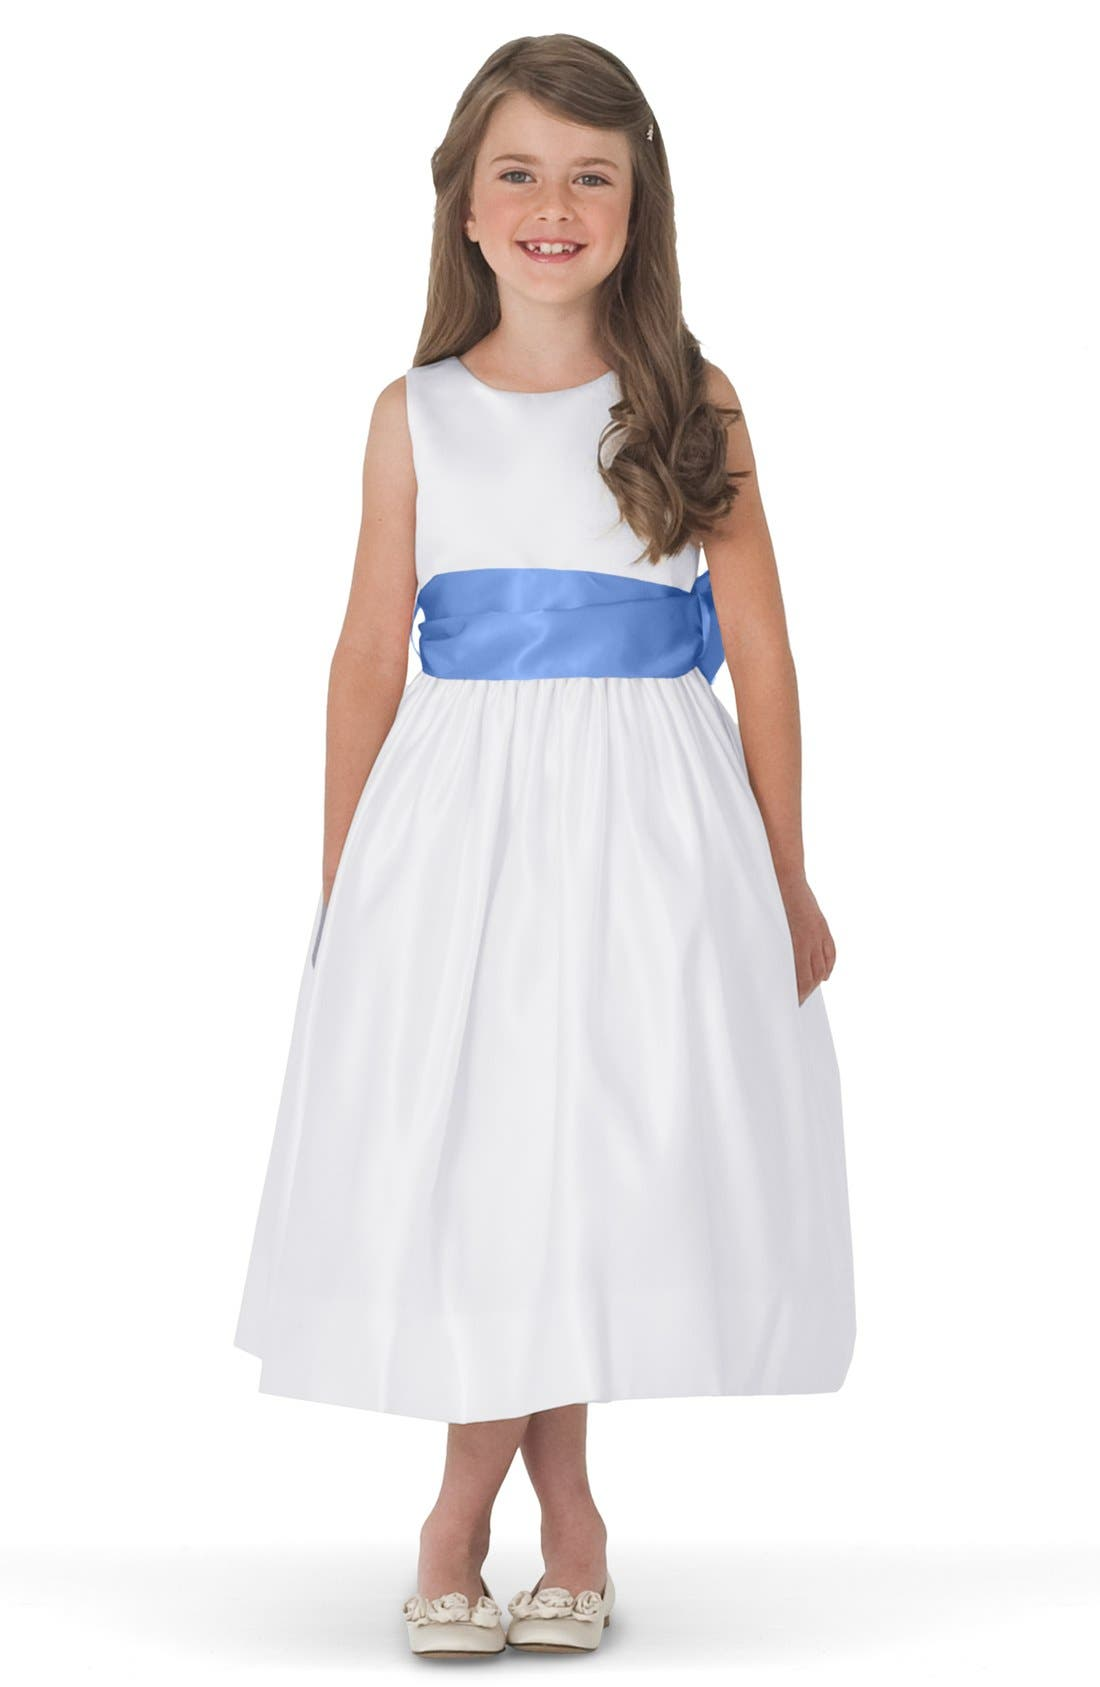 Alternate Image 1 Selected - Us Angels White Tank Dress with Satin Sash (Toddler, Little Girls & Big Girls)